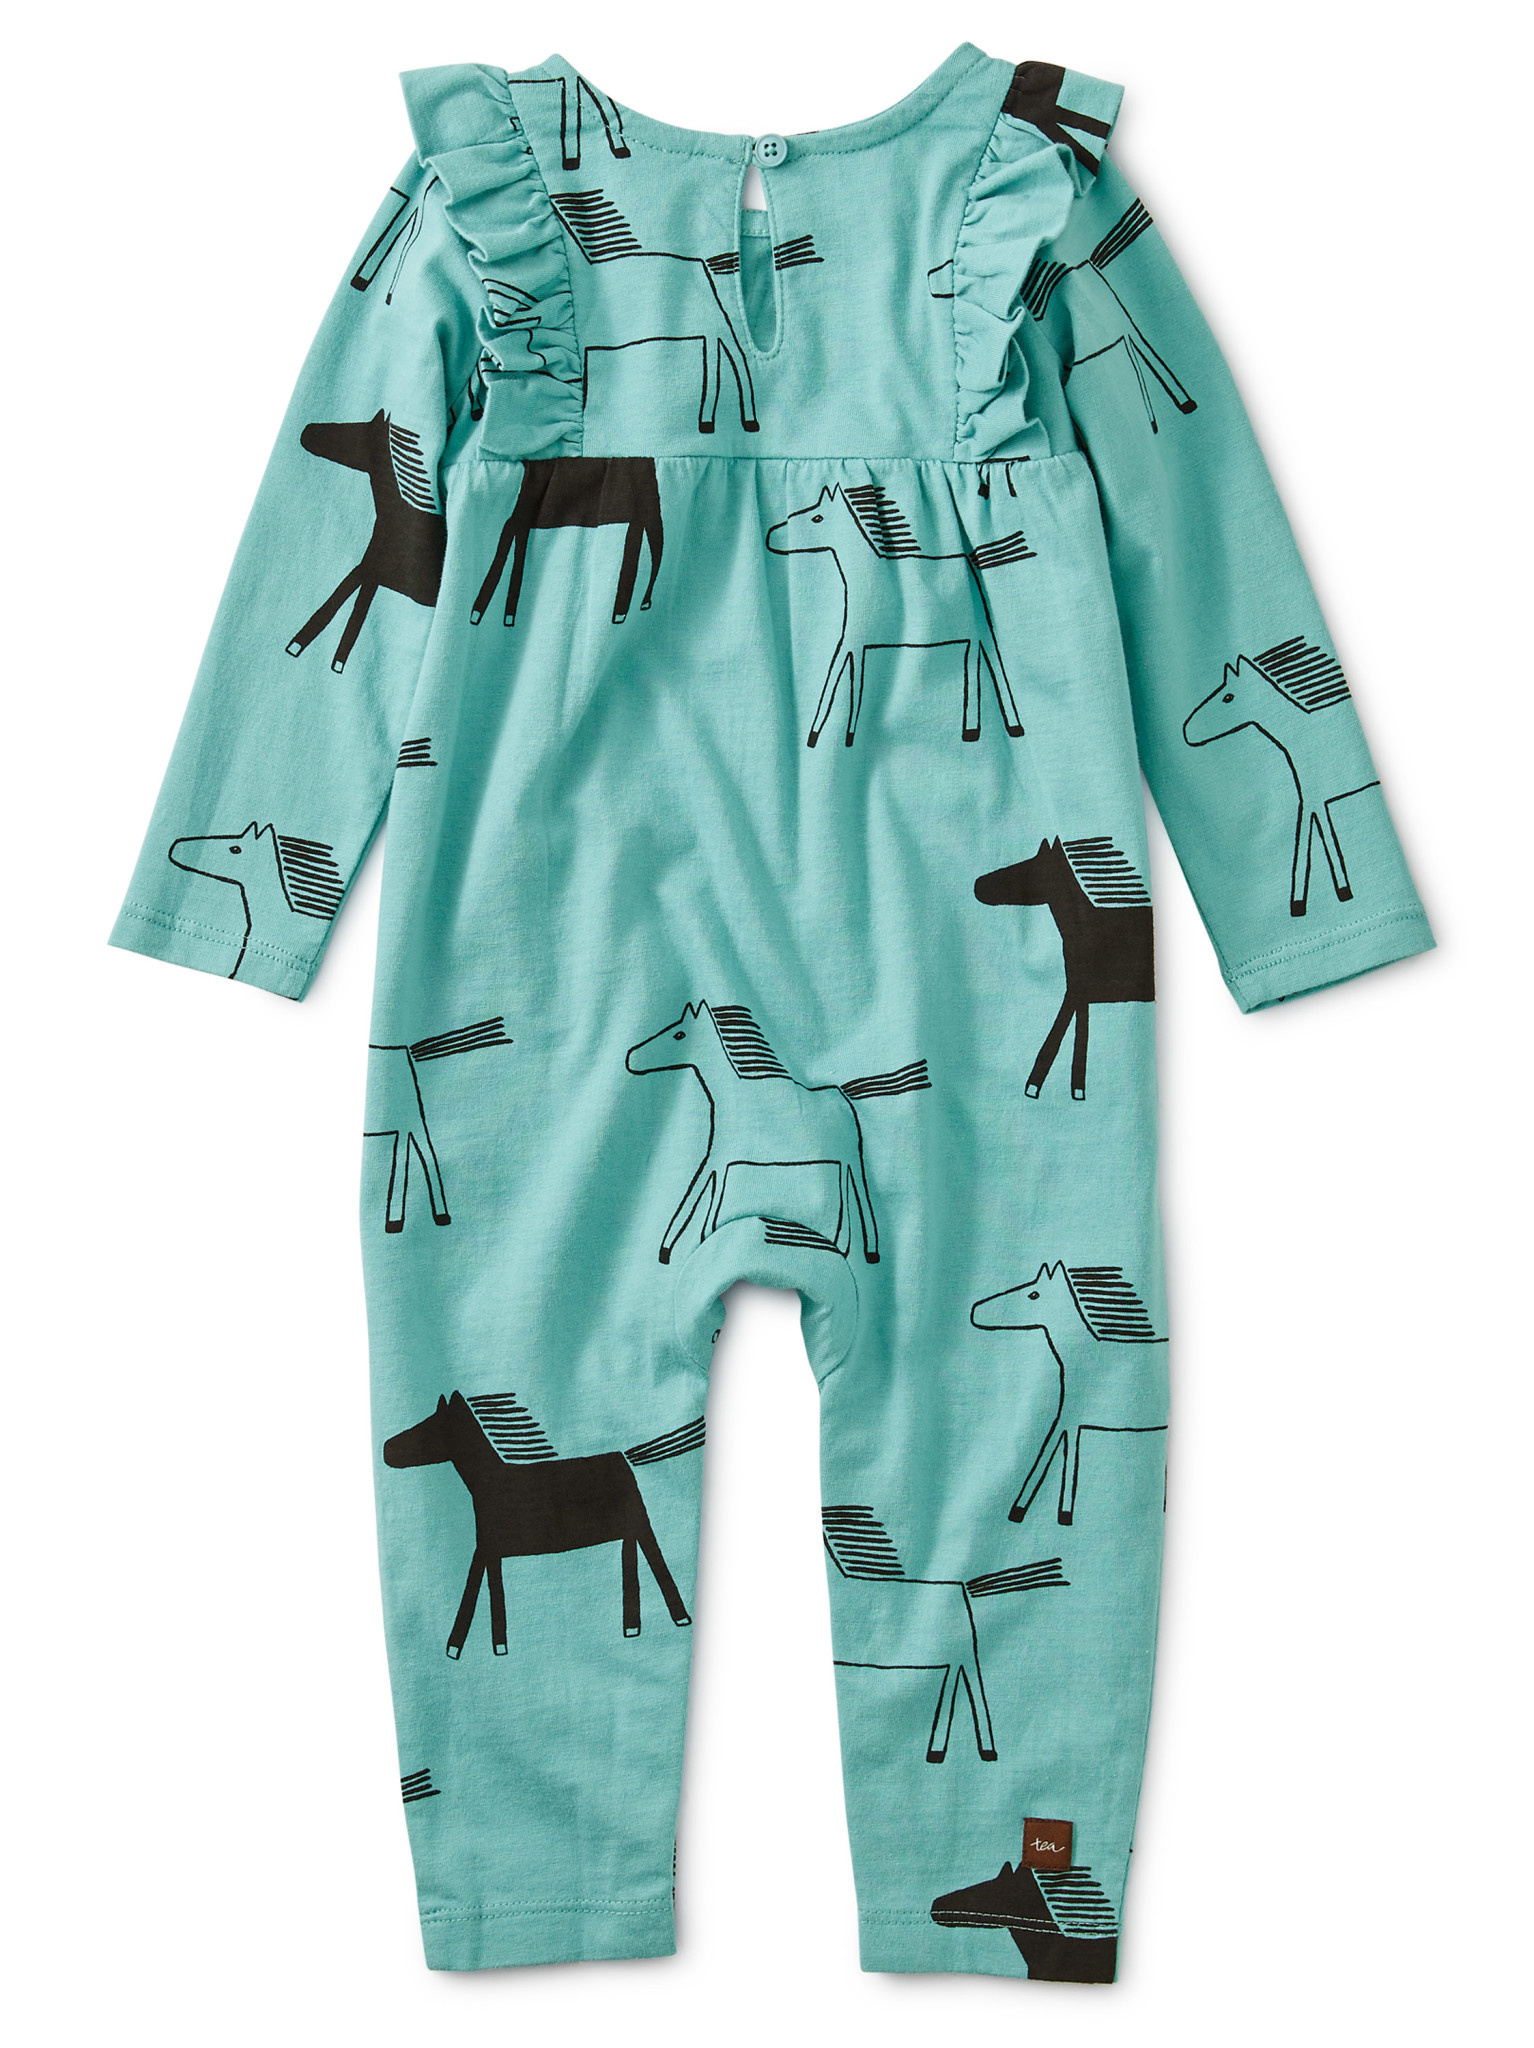 Tea Collection Highland Horses Ruffle Romper